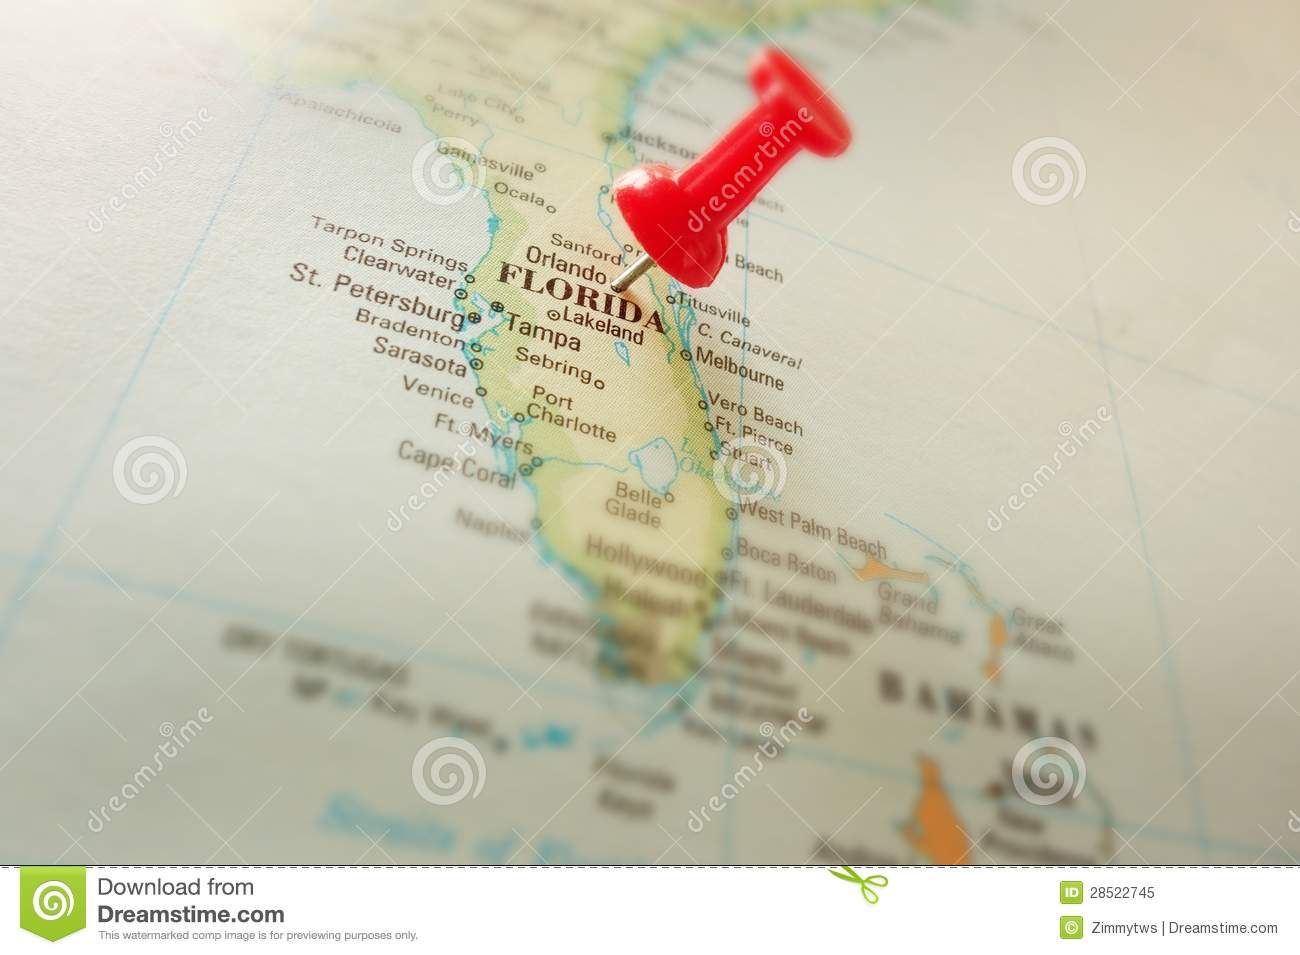 Map Of Florida Near Orlando.Florida Map Stock Image Image Of Tropical Locate Macro 28522745